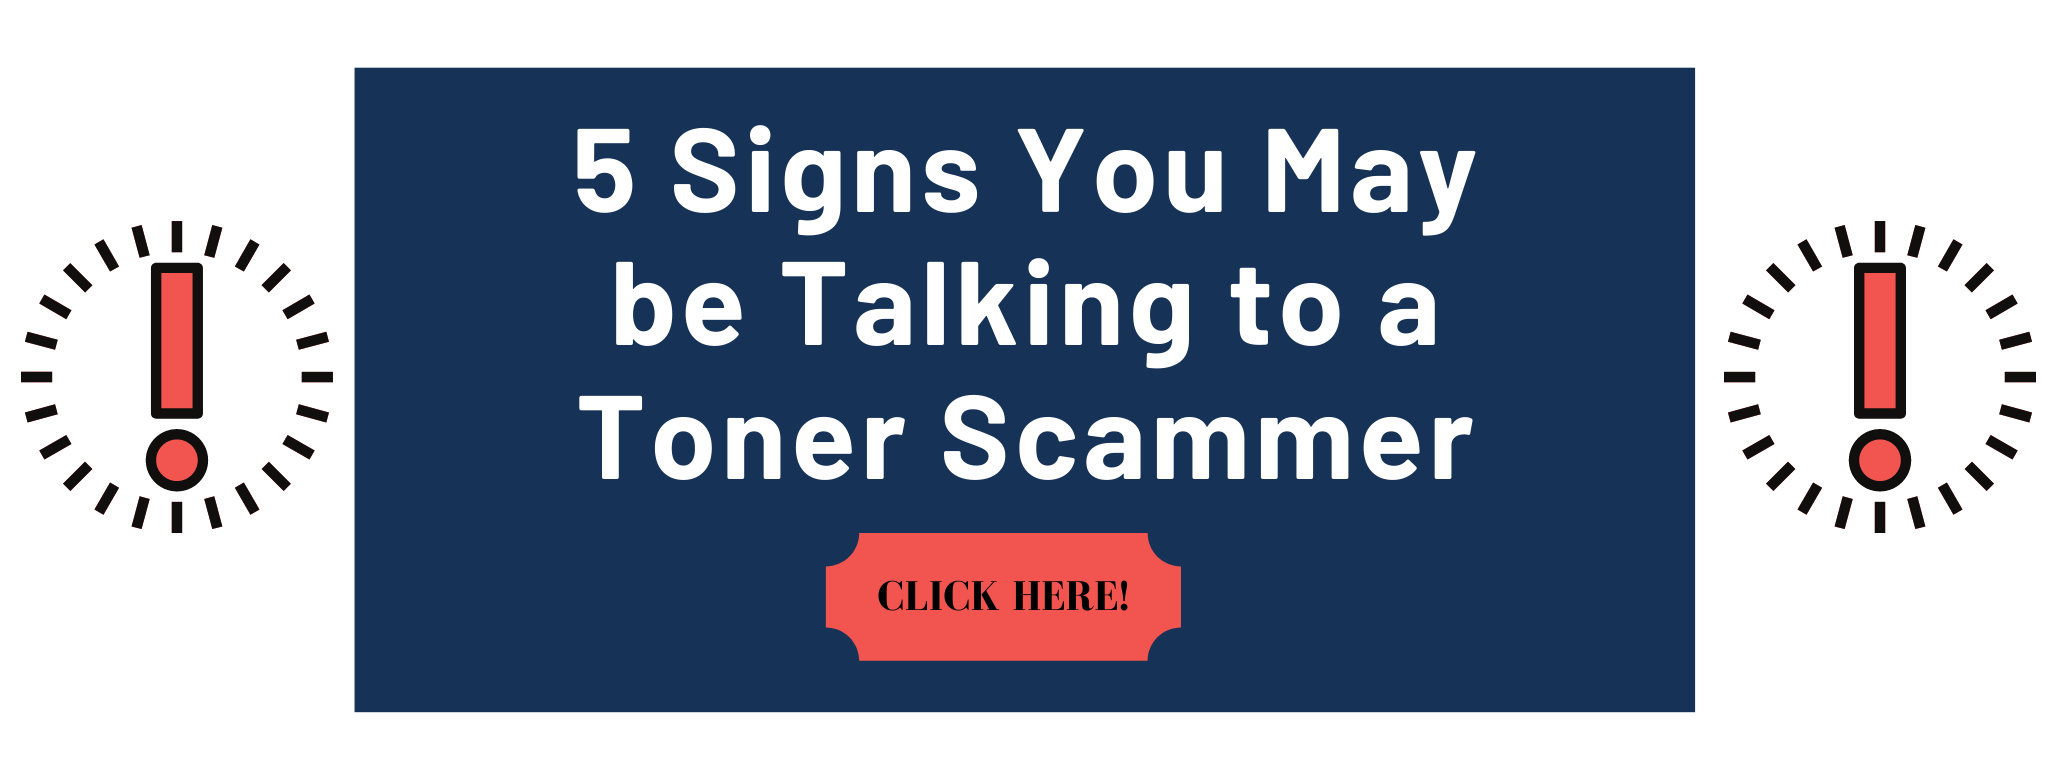 Infographic: 5 Signs You May be Talking to a Toner Scammer